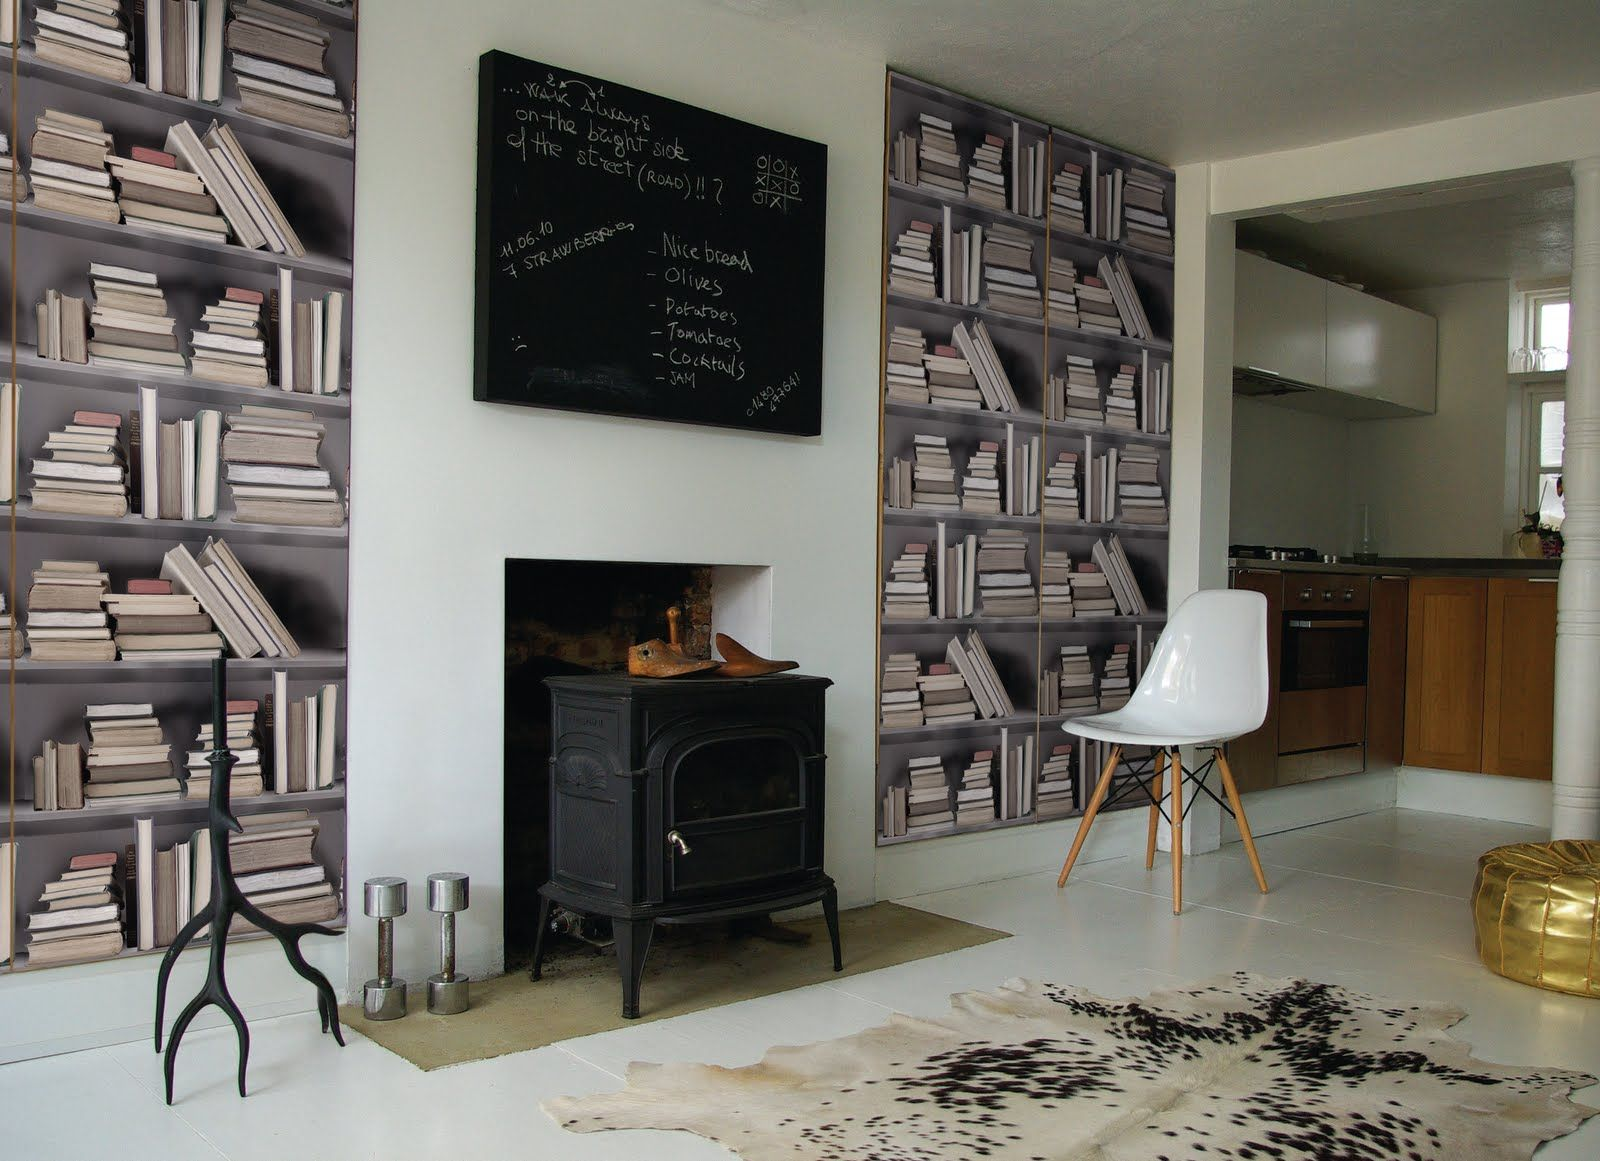 The Vintage Bookshelf wallpaper features shelves of old books to create a  vintage library look. It can be used to create the feeling of a study, ...